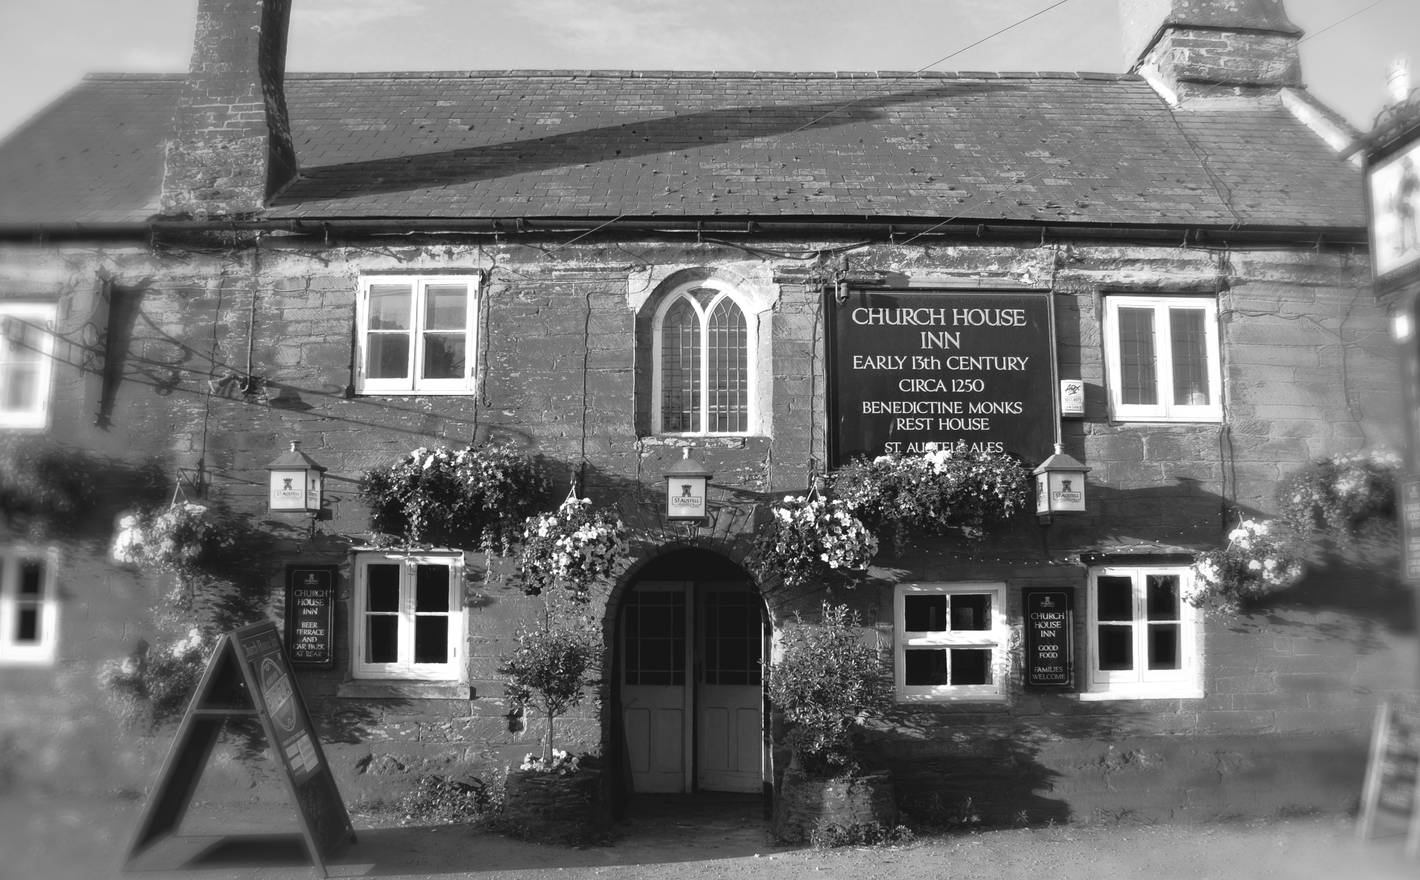 Church House Inn, Churchstow